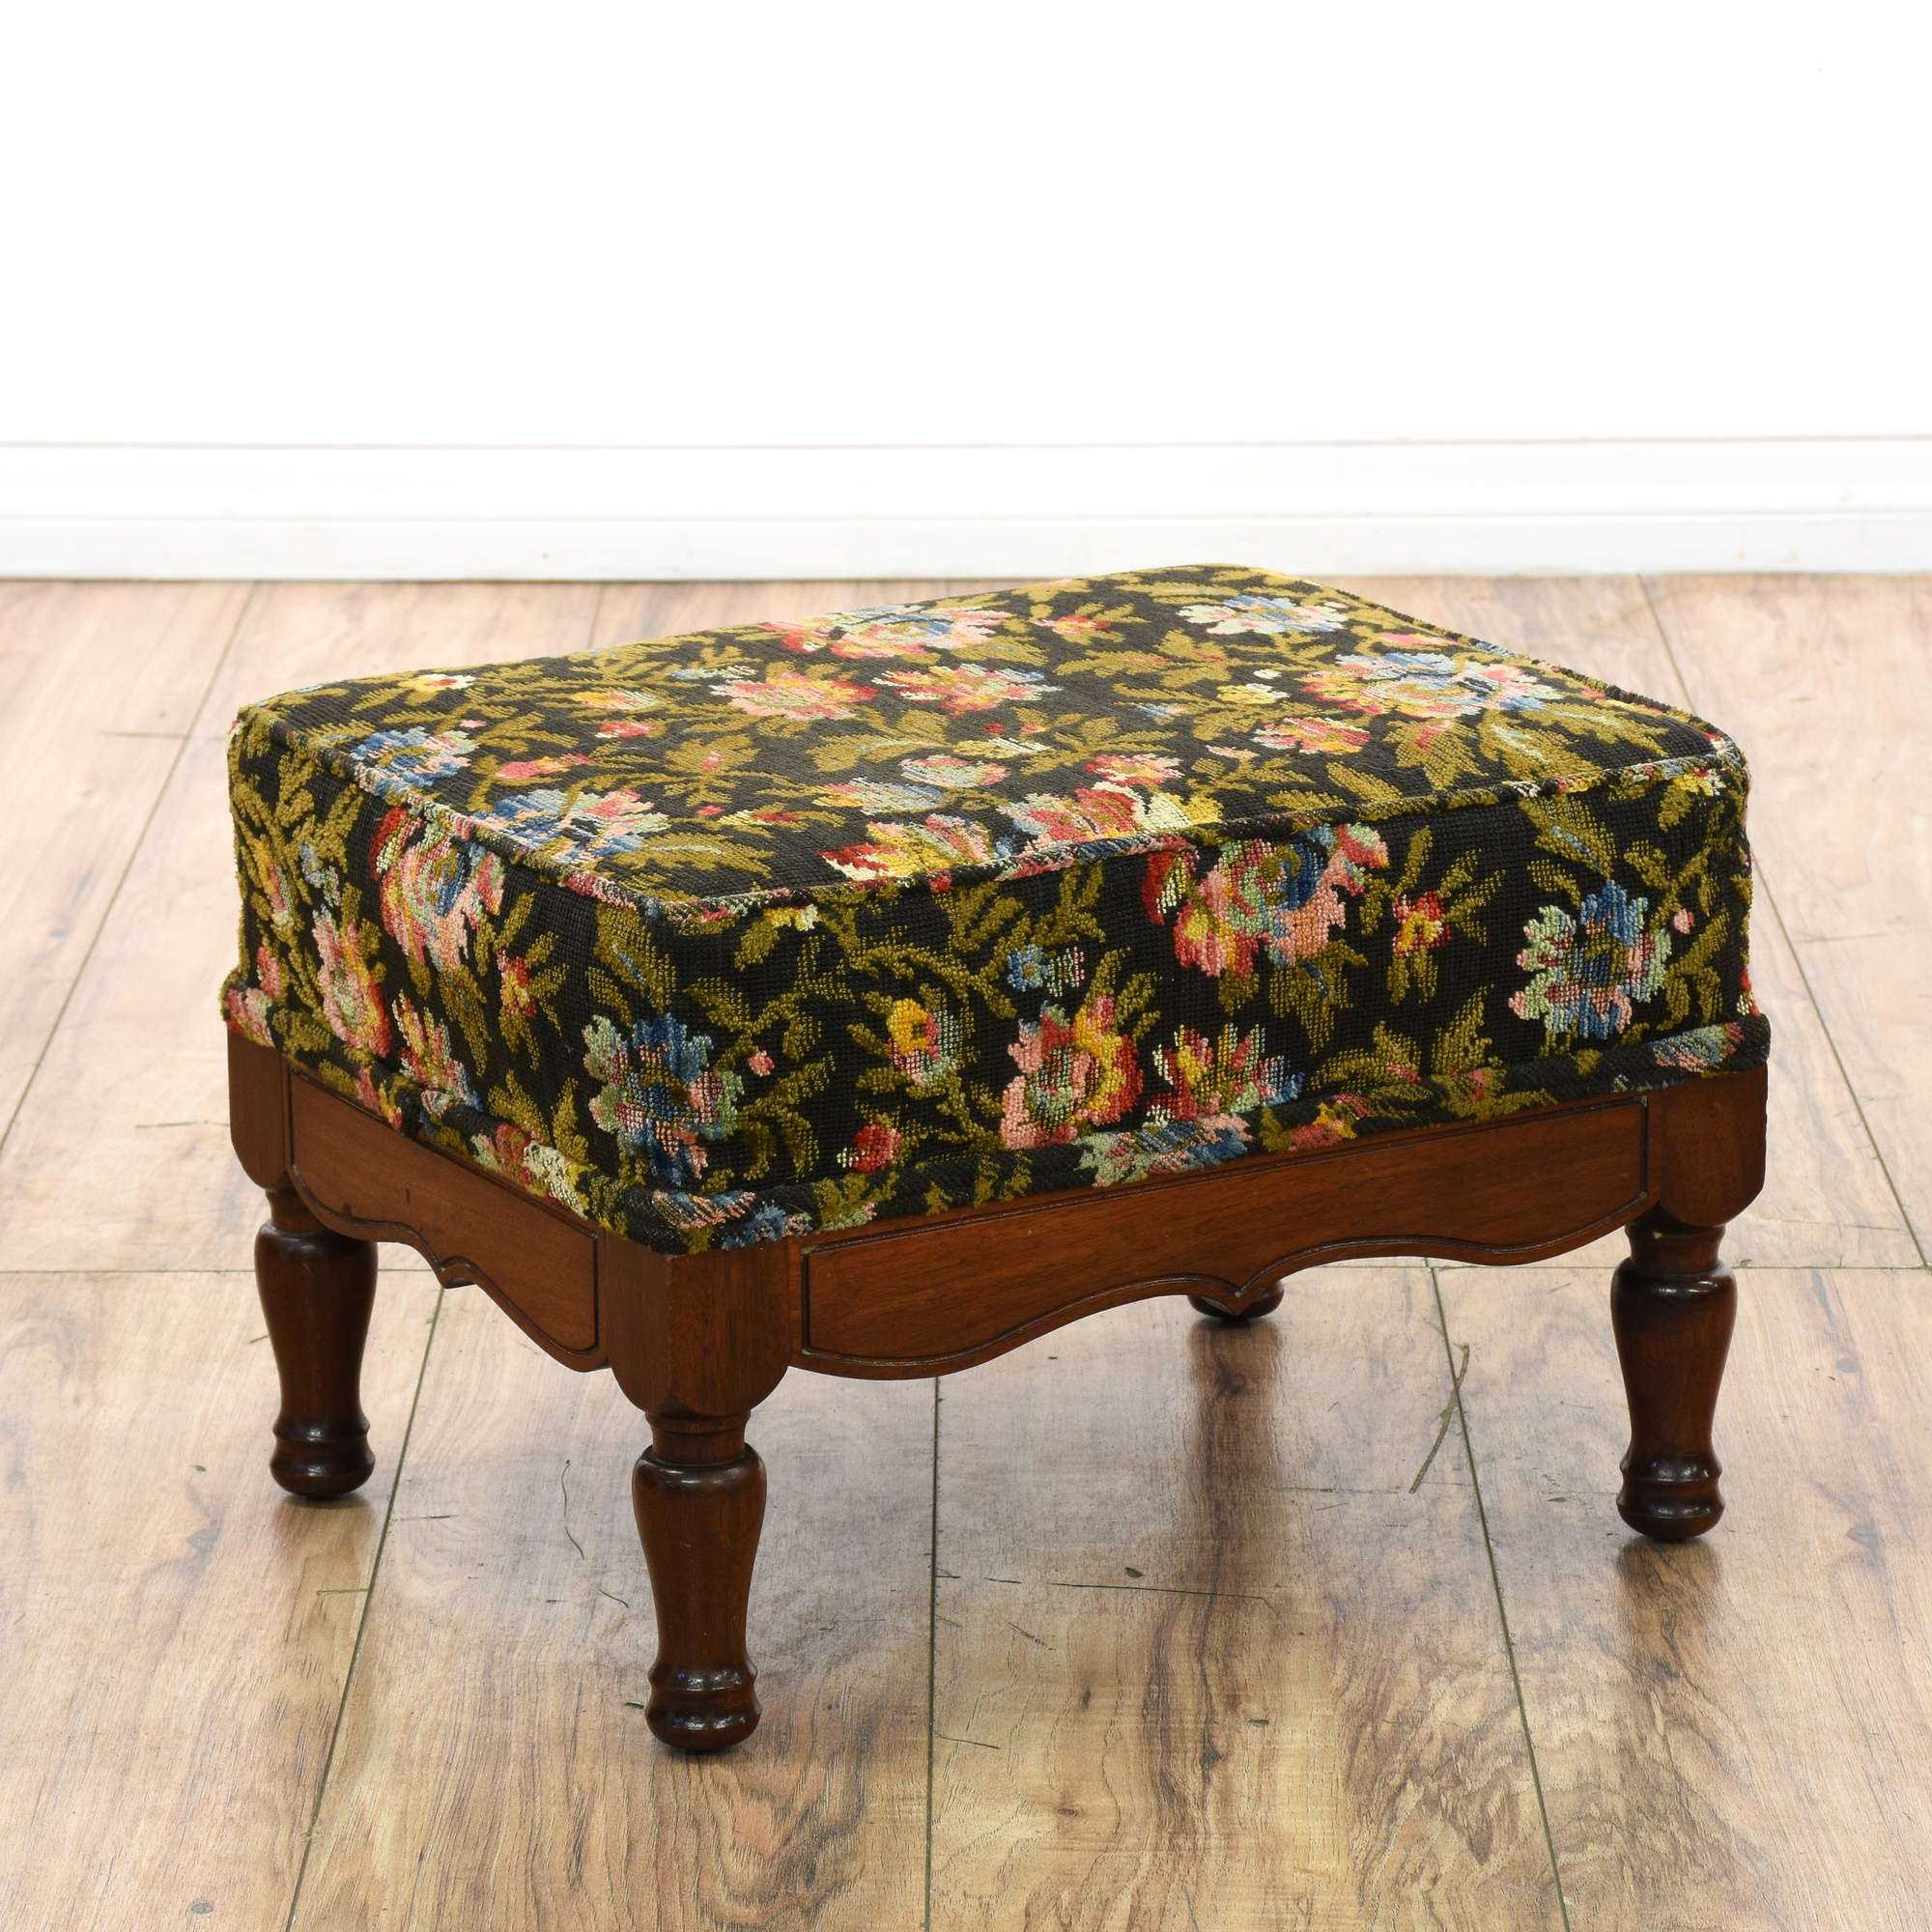 outlines fabric your perfectly grey match floral pin to teton is you home in lounging style be ottoman designed will and ideal chair ottomans room set with this for any a club